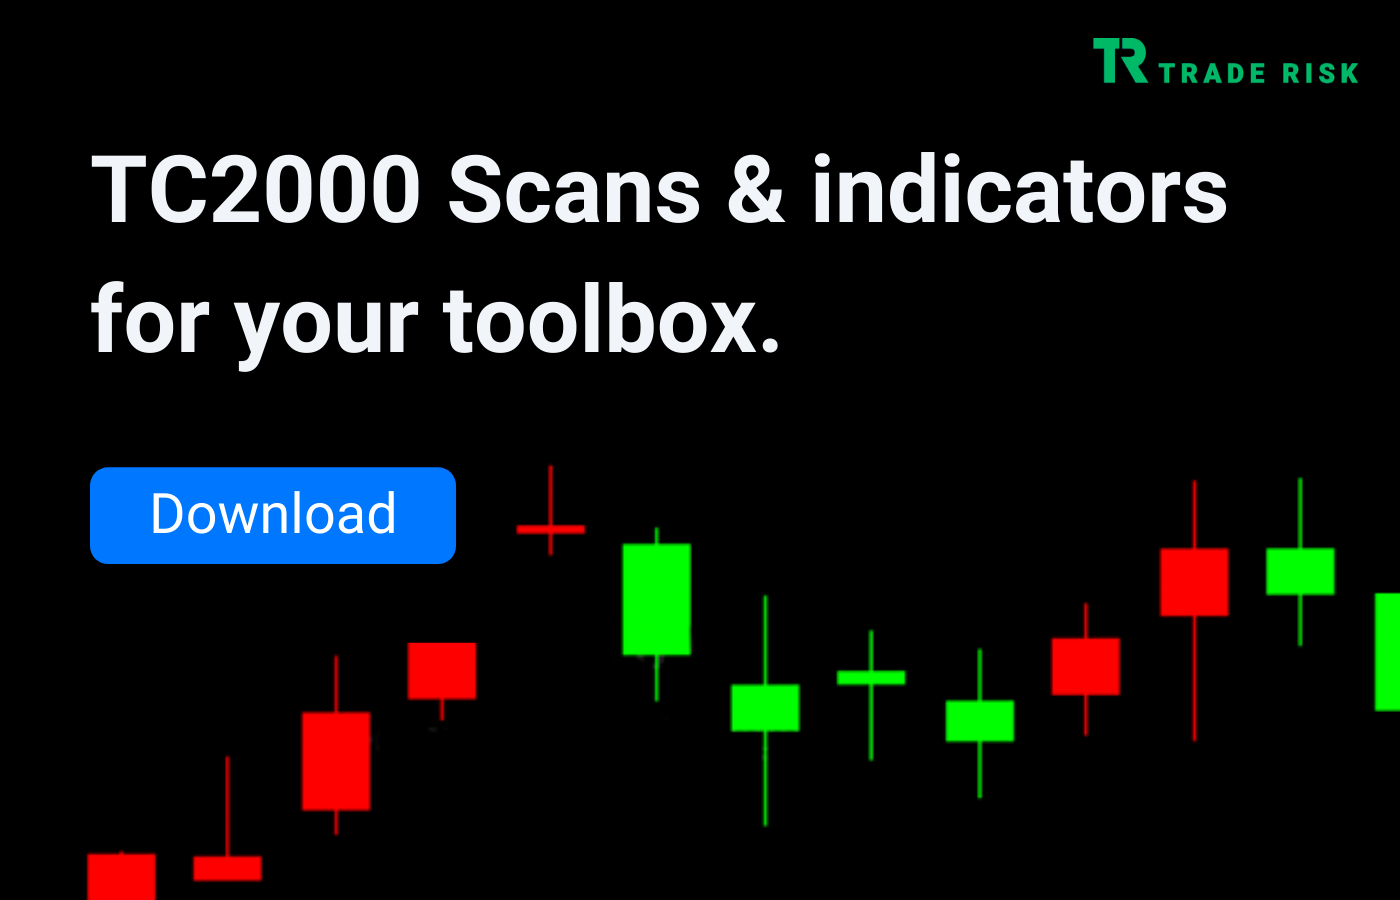 Stock Market Swing Trade Ideas - Image of TC2000 scans ad